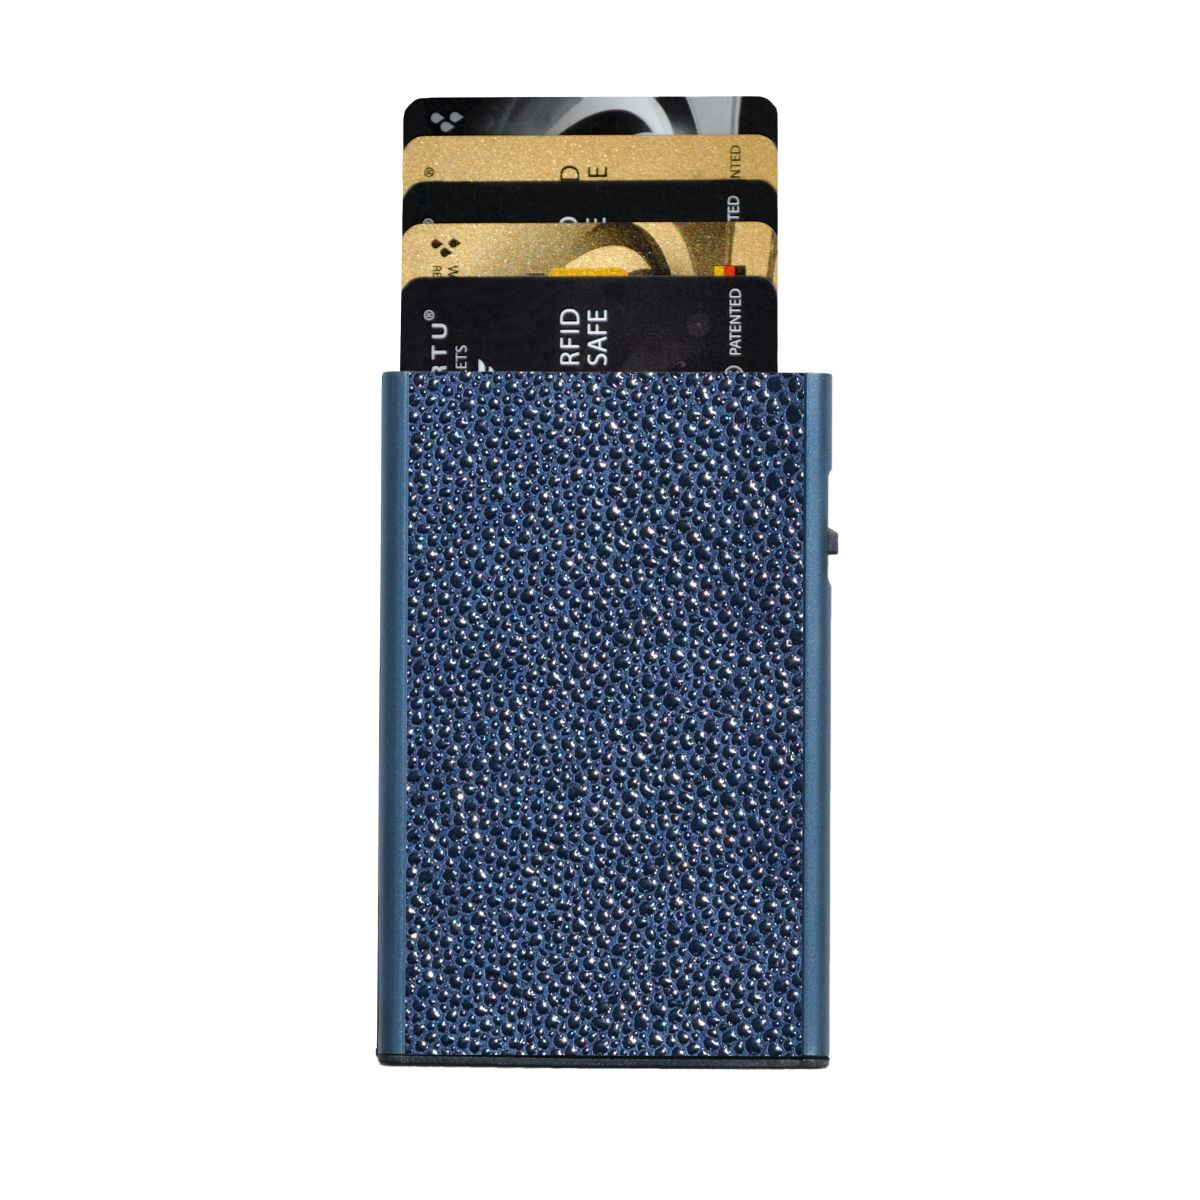 TRU VIRTU Card Case Click n Slide Wallet - Sting Ray Blue